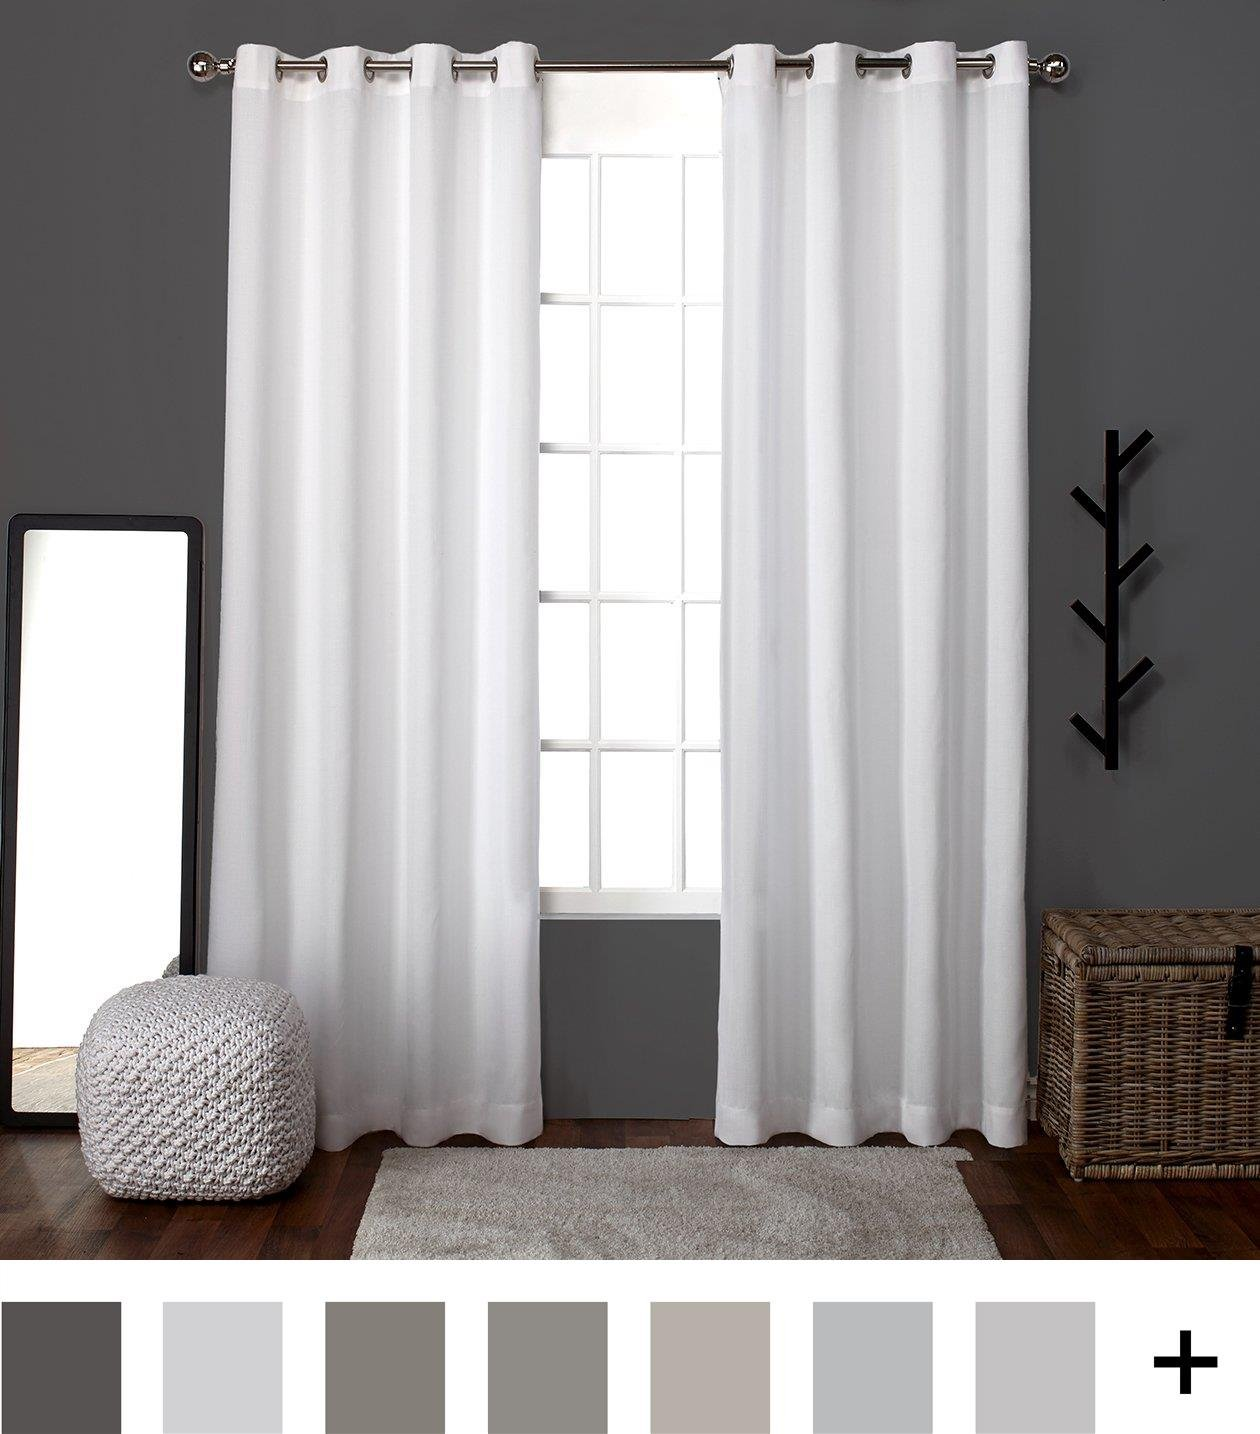 Home Loha Linen Window Curtain Panel Pair with Grommet Top, Winter White